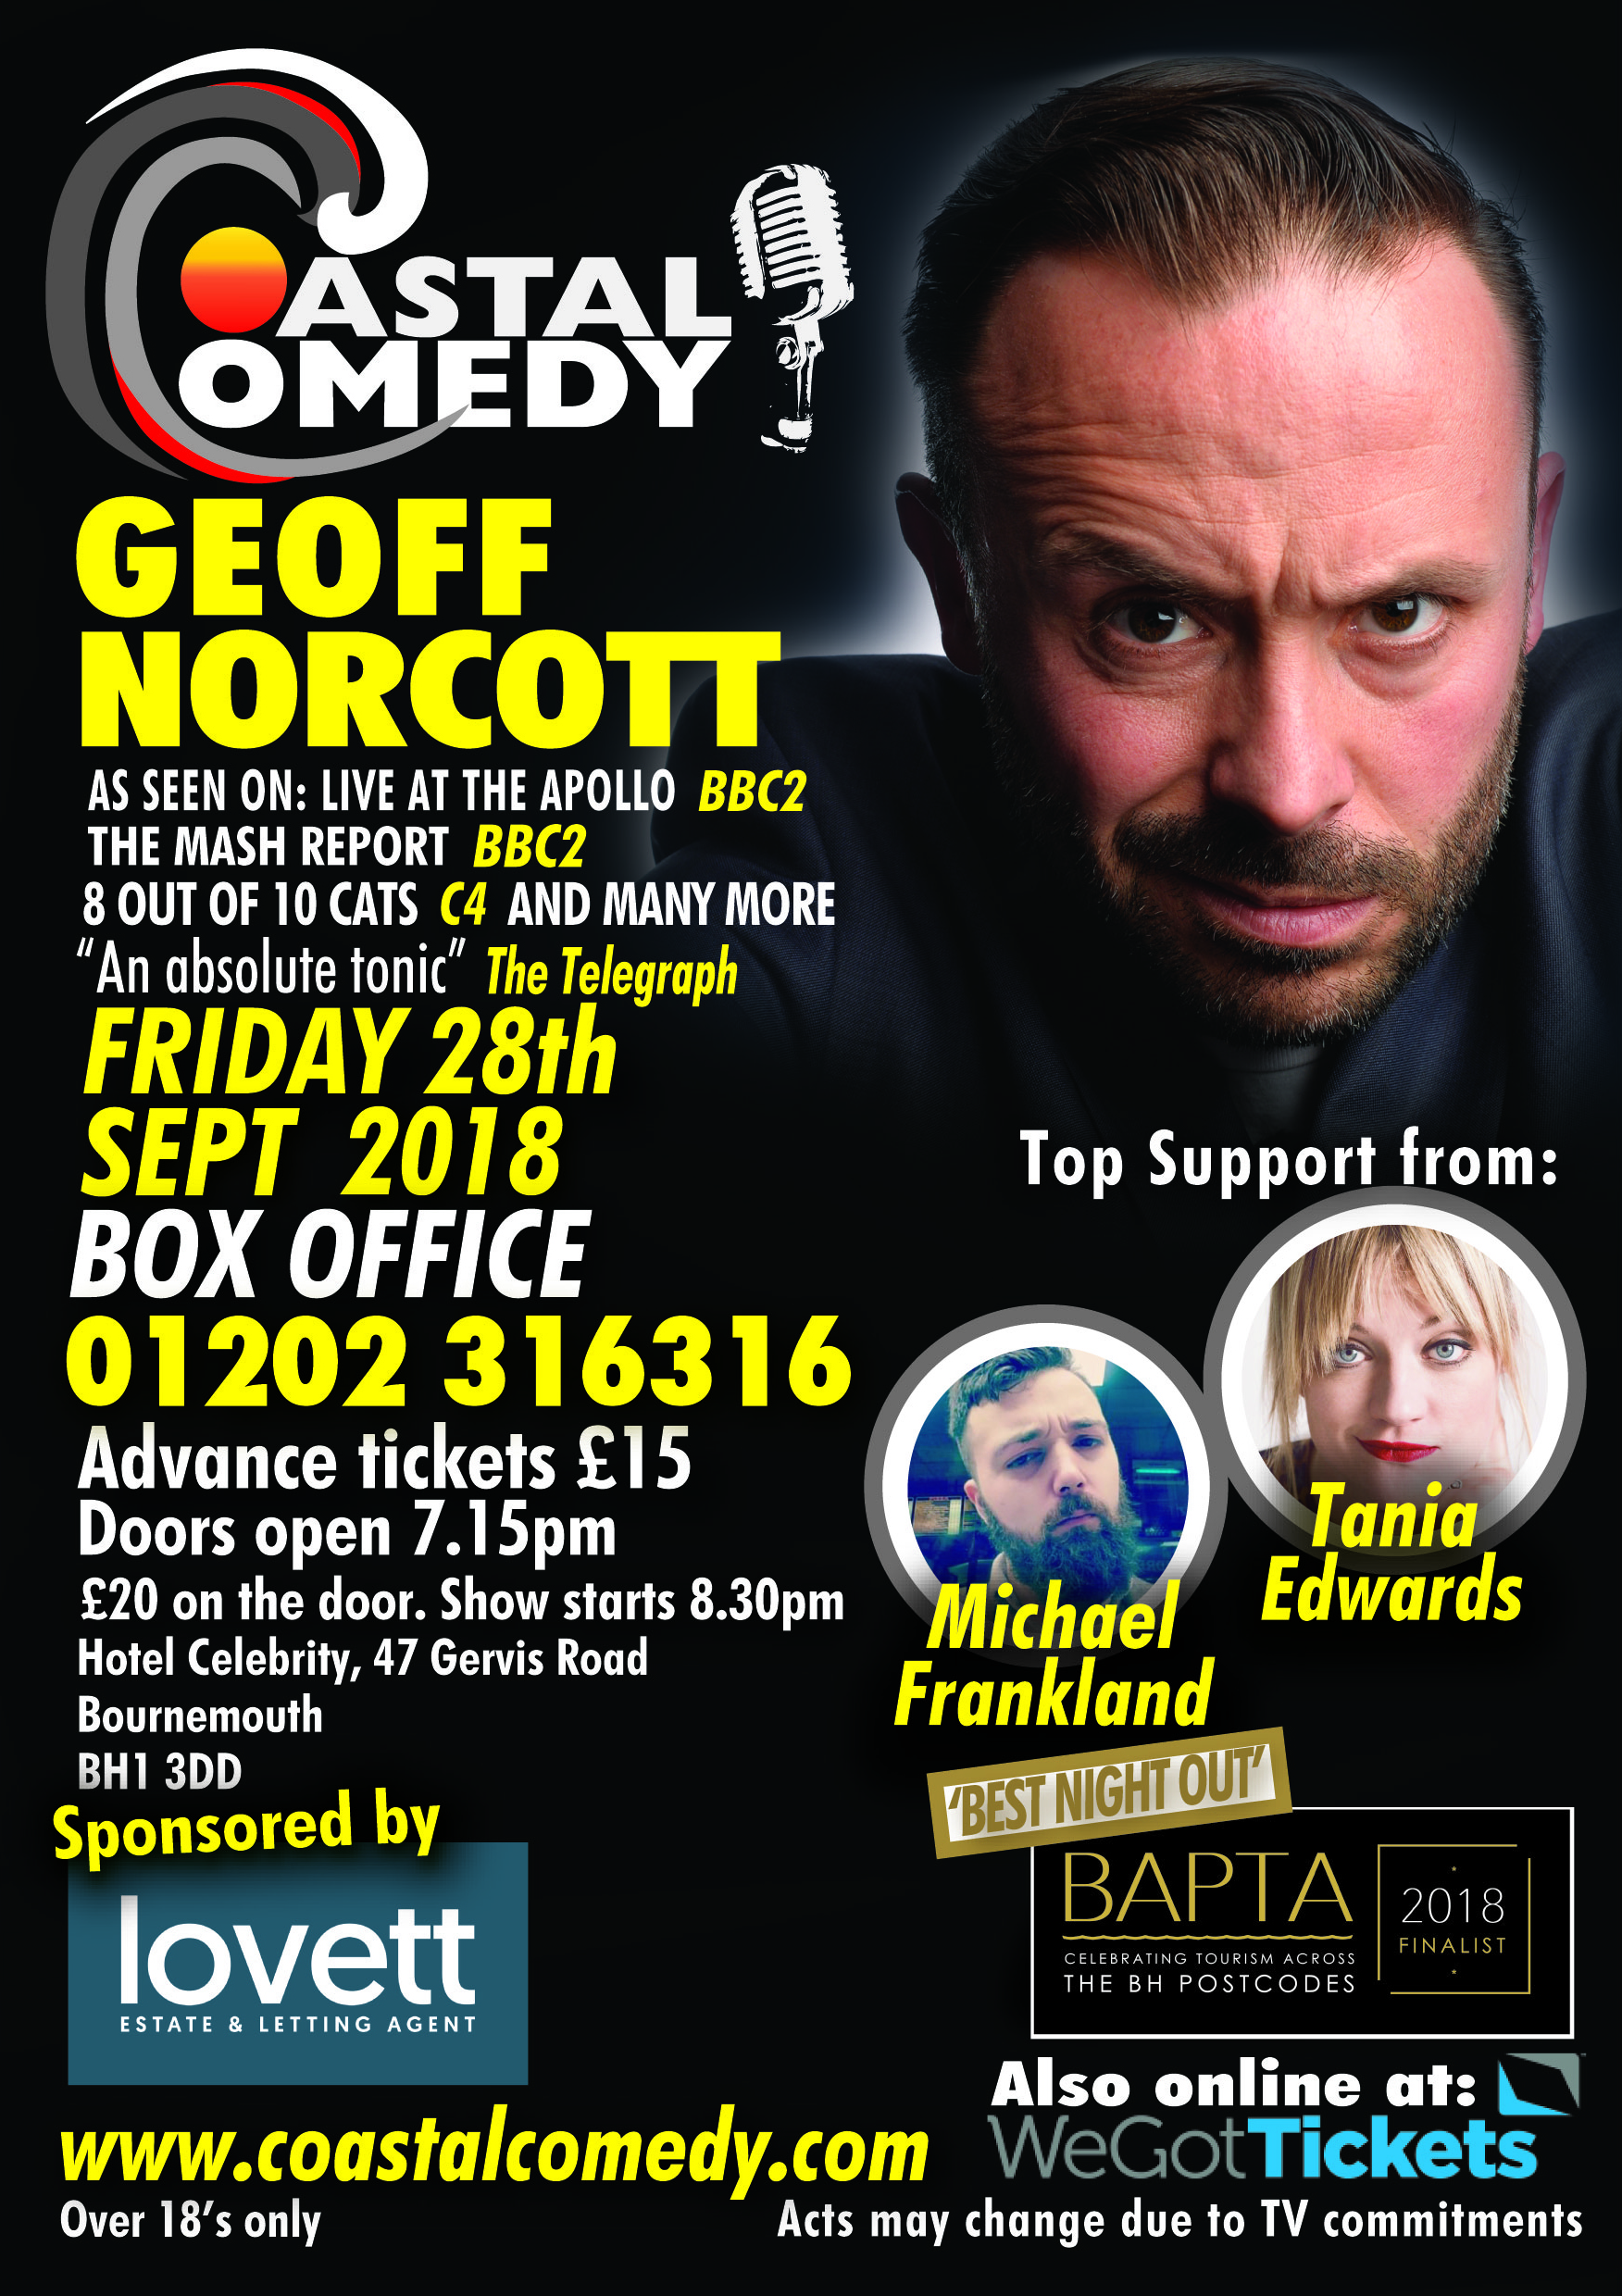 Geoff Norcott, comedy, best night out, LOL, pavillion, comic, stand-up, bournemouth, what's on, whats on,